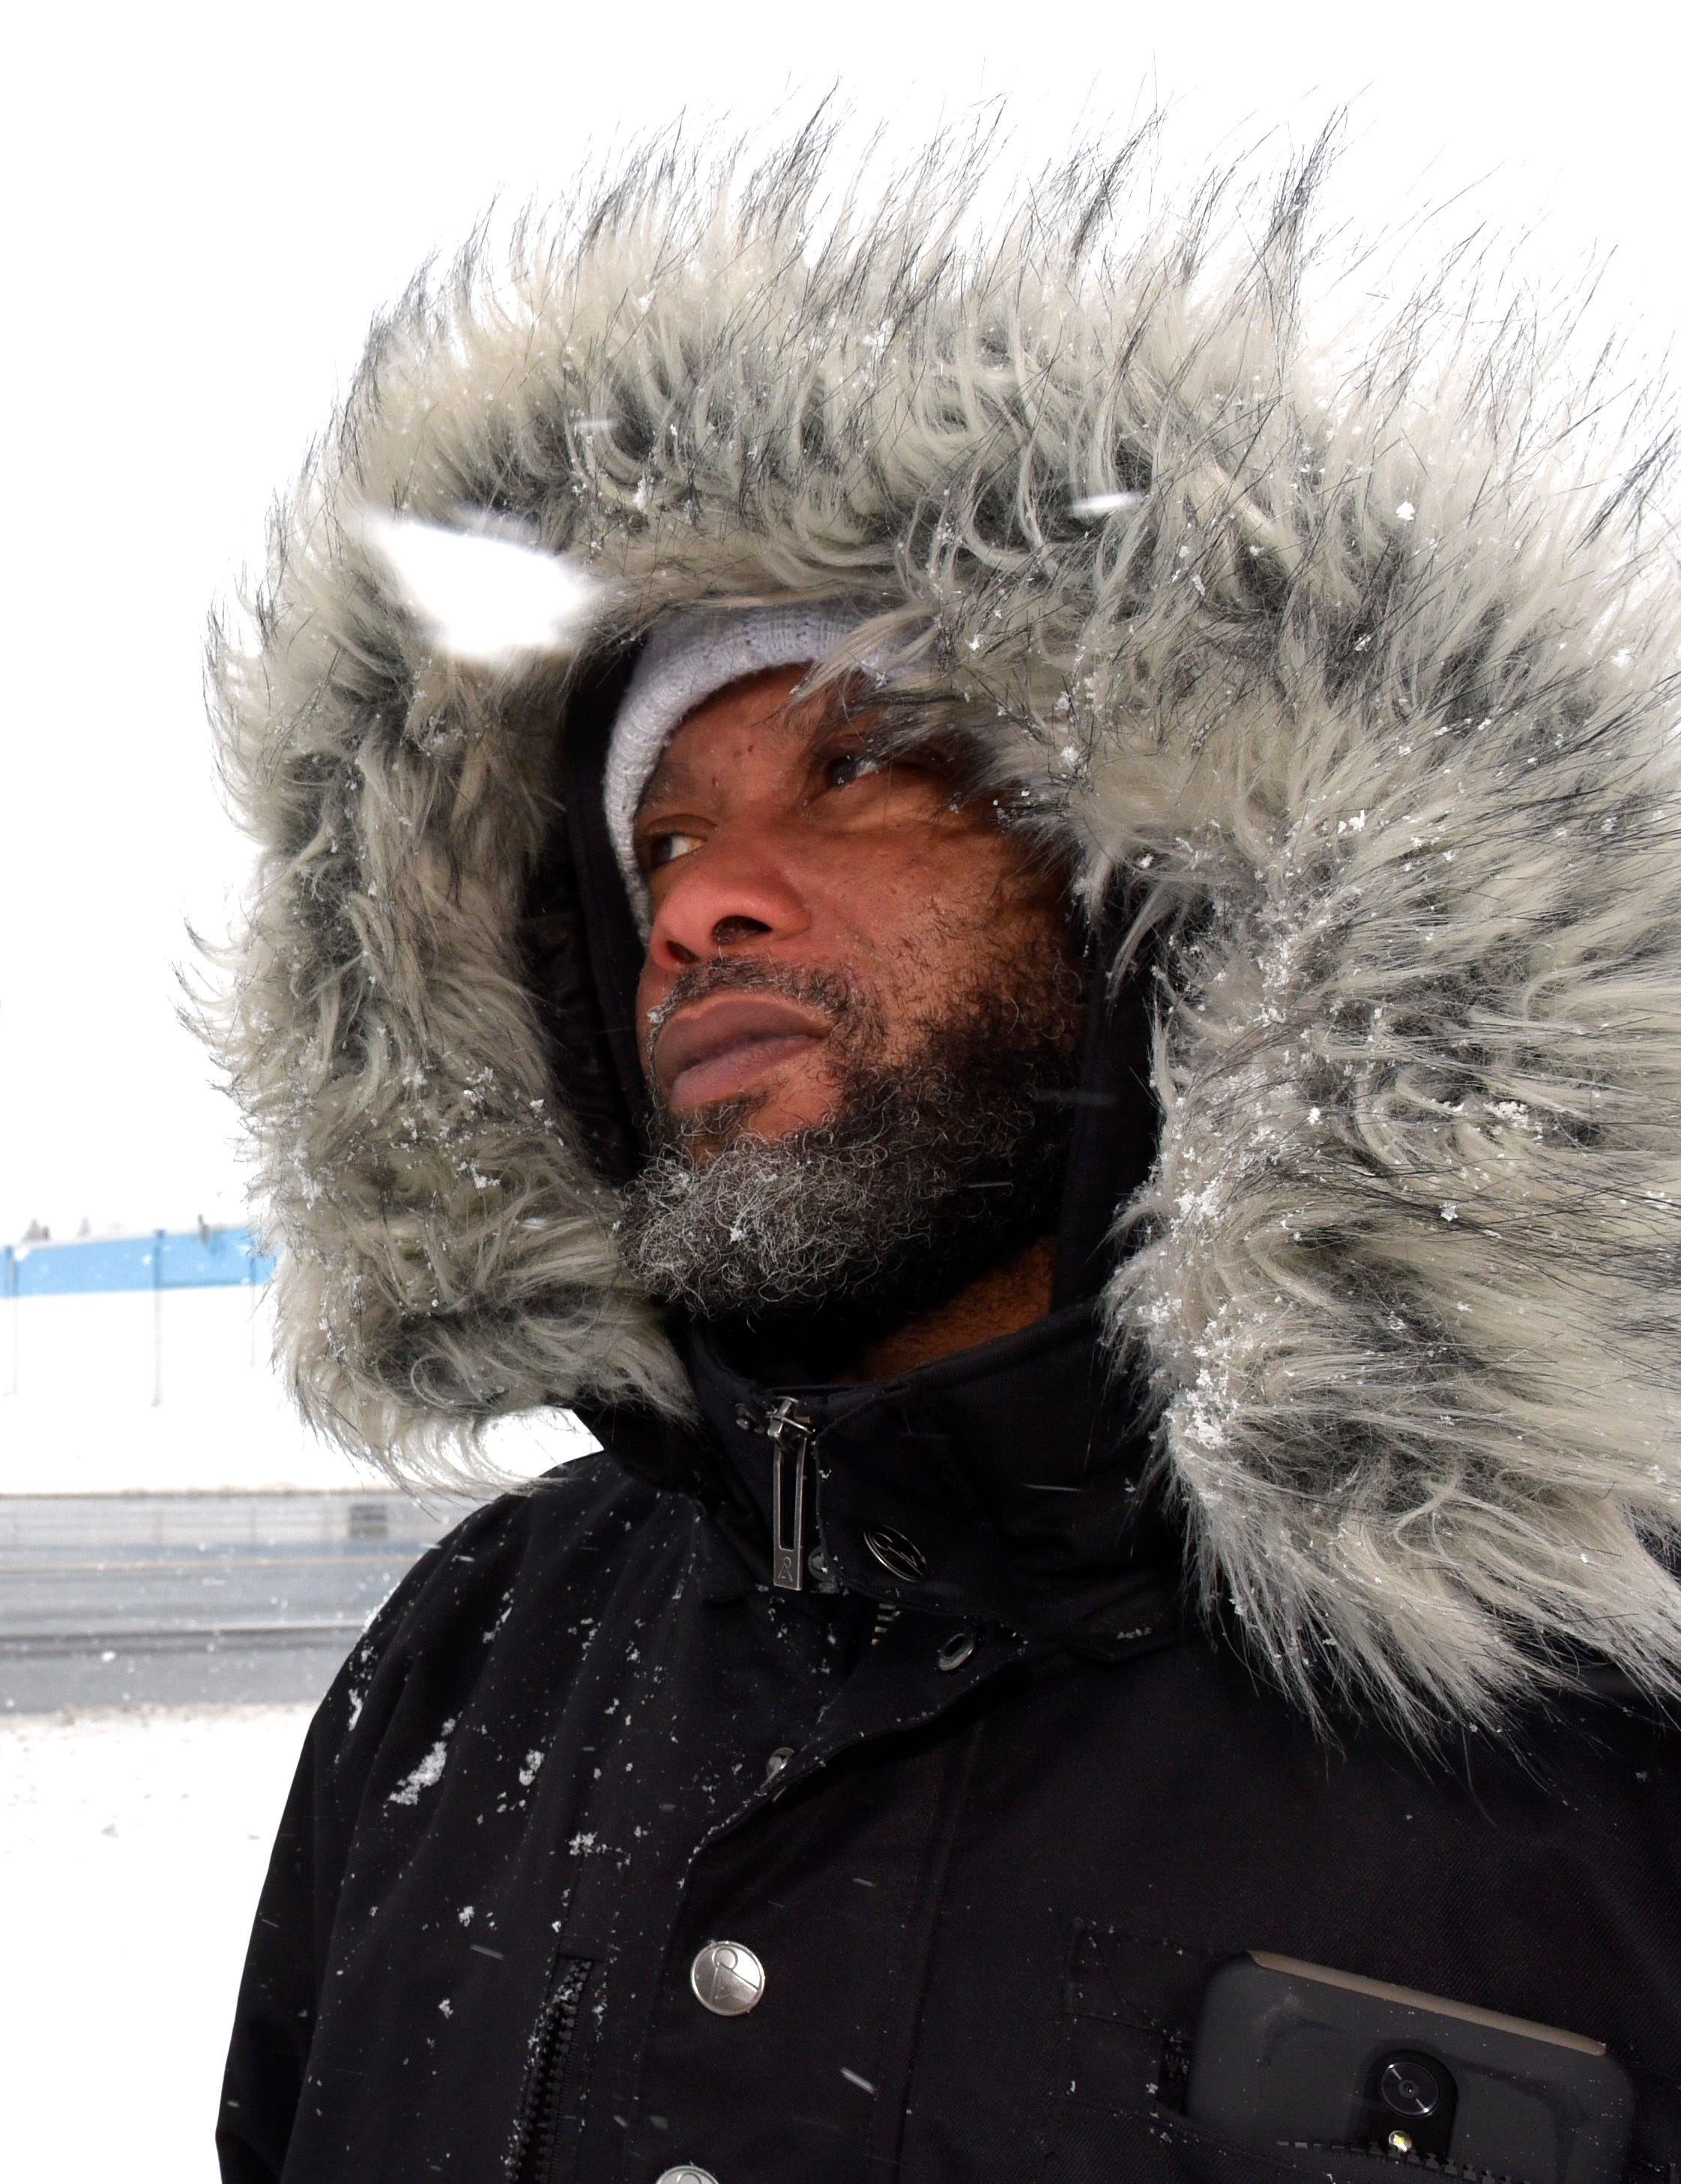 Paul Hurst, of Clinton Township, braces against the cold wind and snow while waiting for a SMART bus in Sterling Heights, Wednesday morning, February 13, 2019.